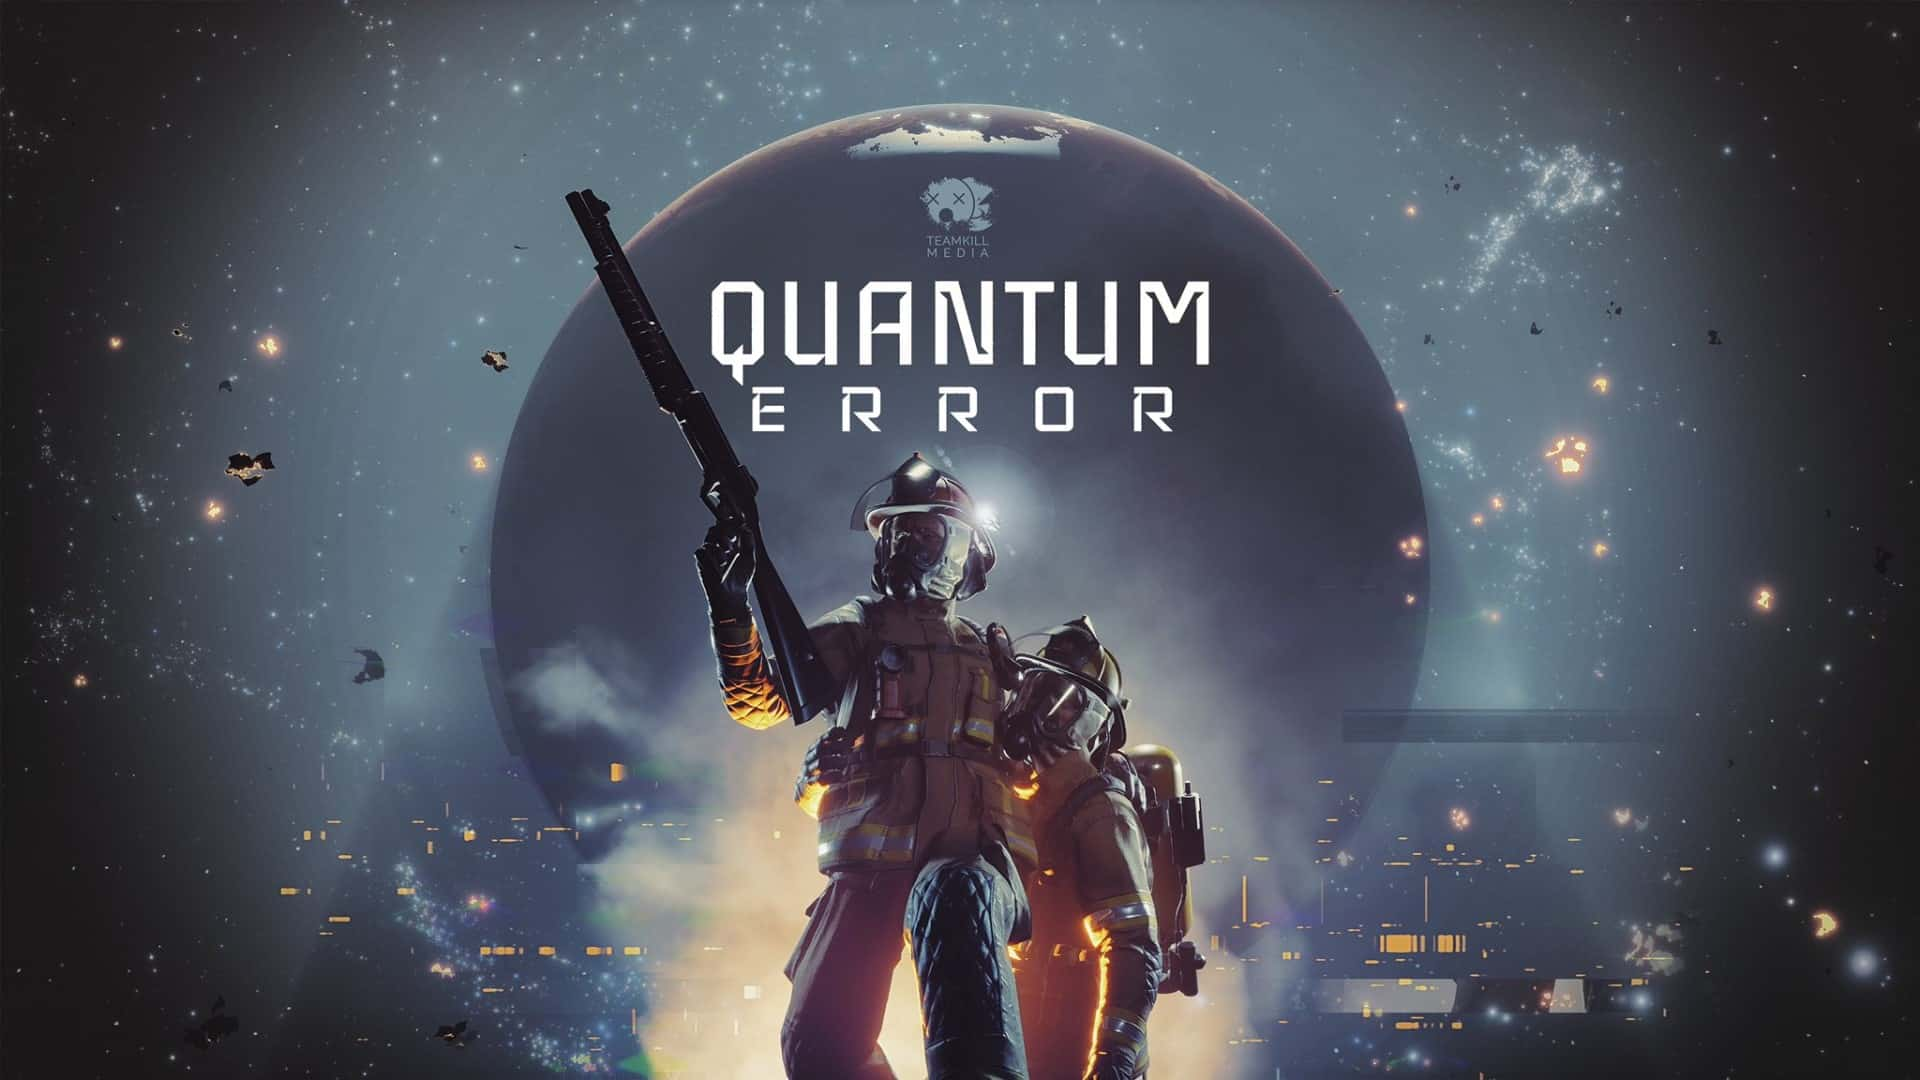 quantum error - GET A LOOK AT PS5 COSMIC HORROR WITH QUANTUM ERROR